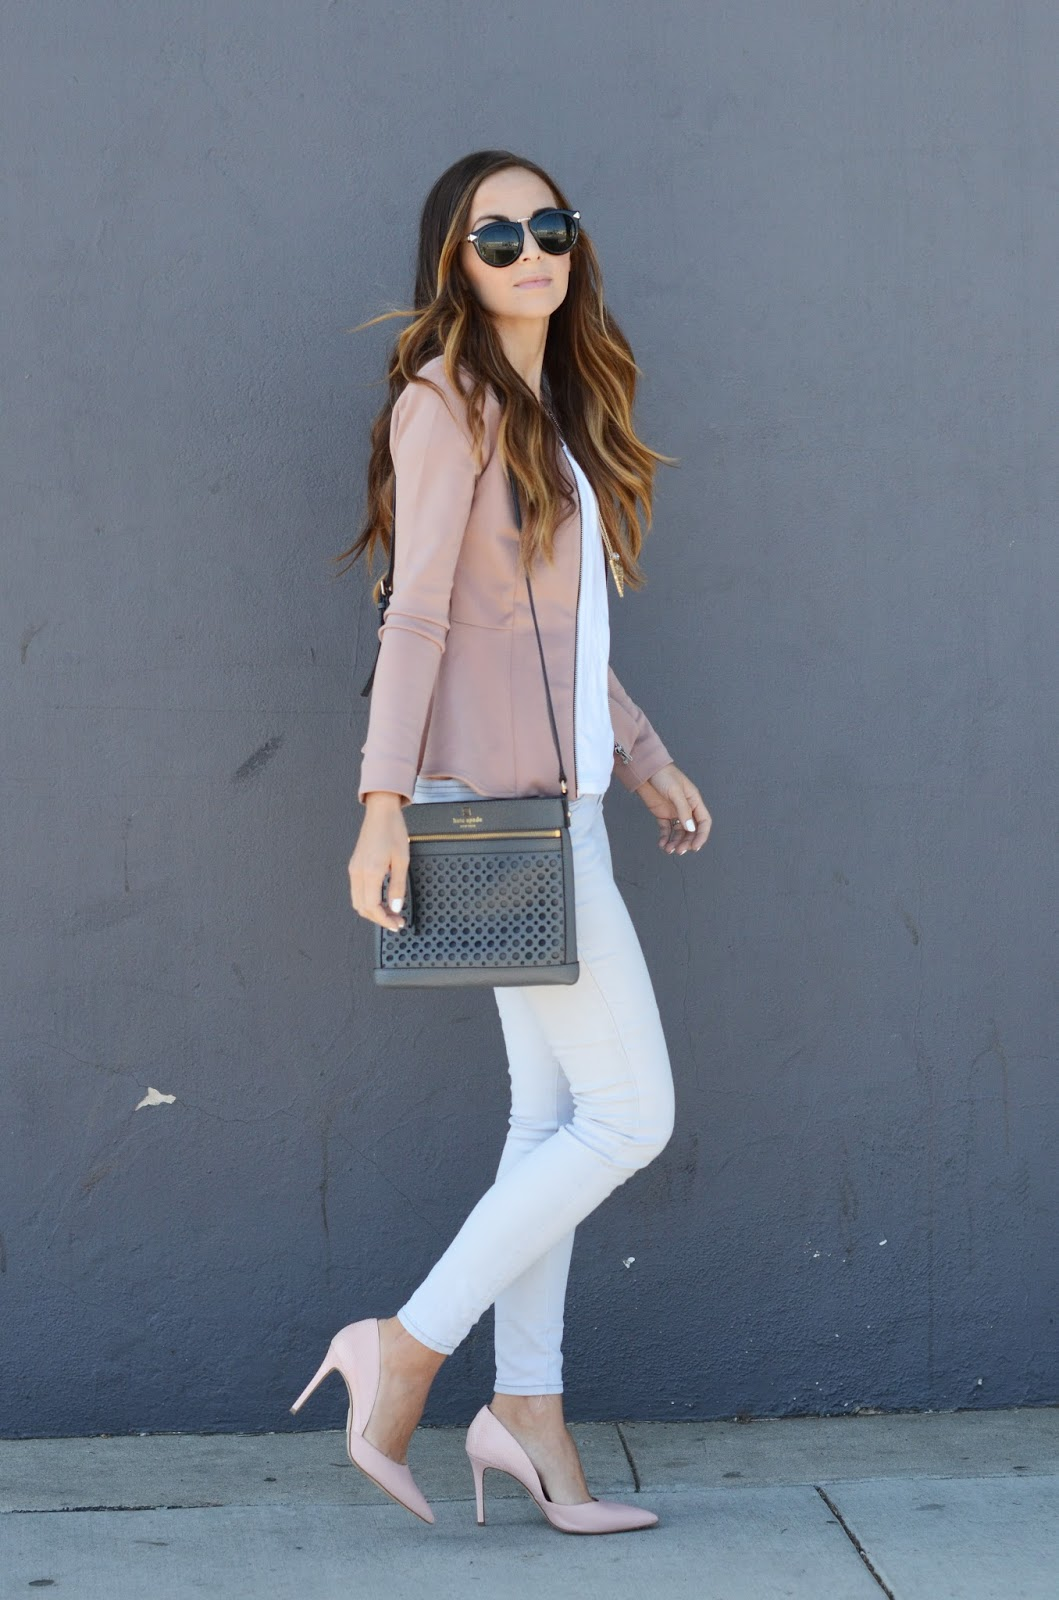 Via Just The Design: Merrick's Art is wearing a blush pink Topshop jacket with a pair of white Old Navy skinny jeans, pink heels and a black Kate Spade handbag